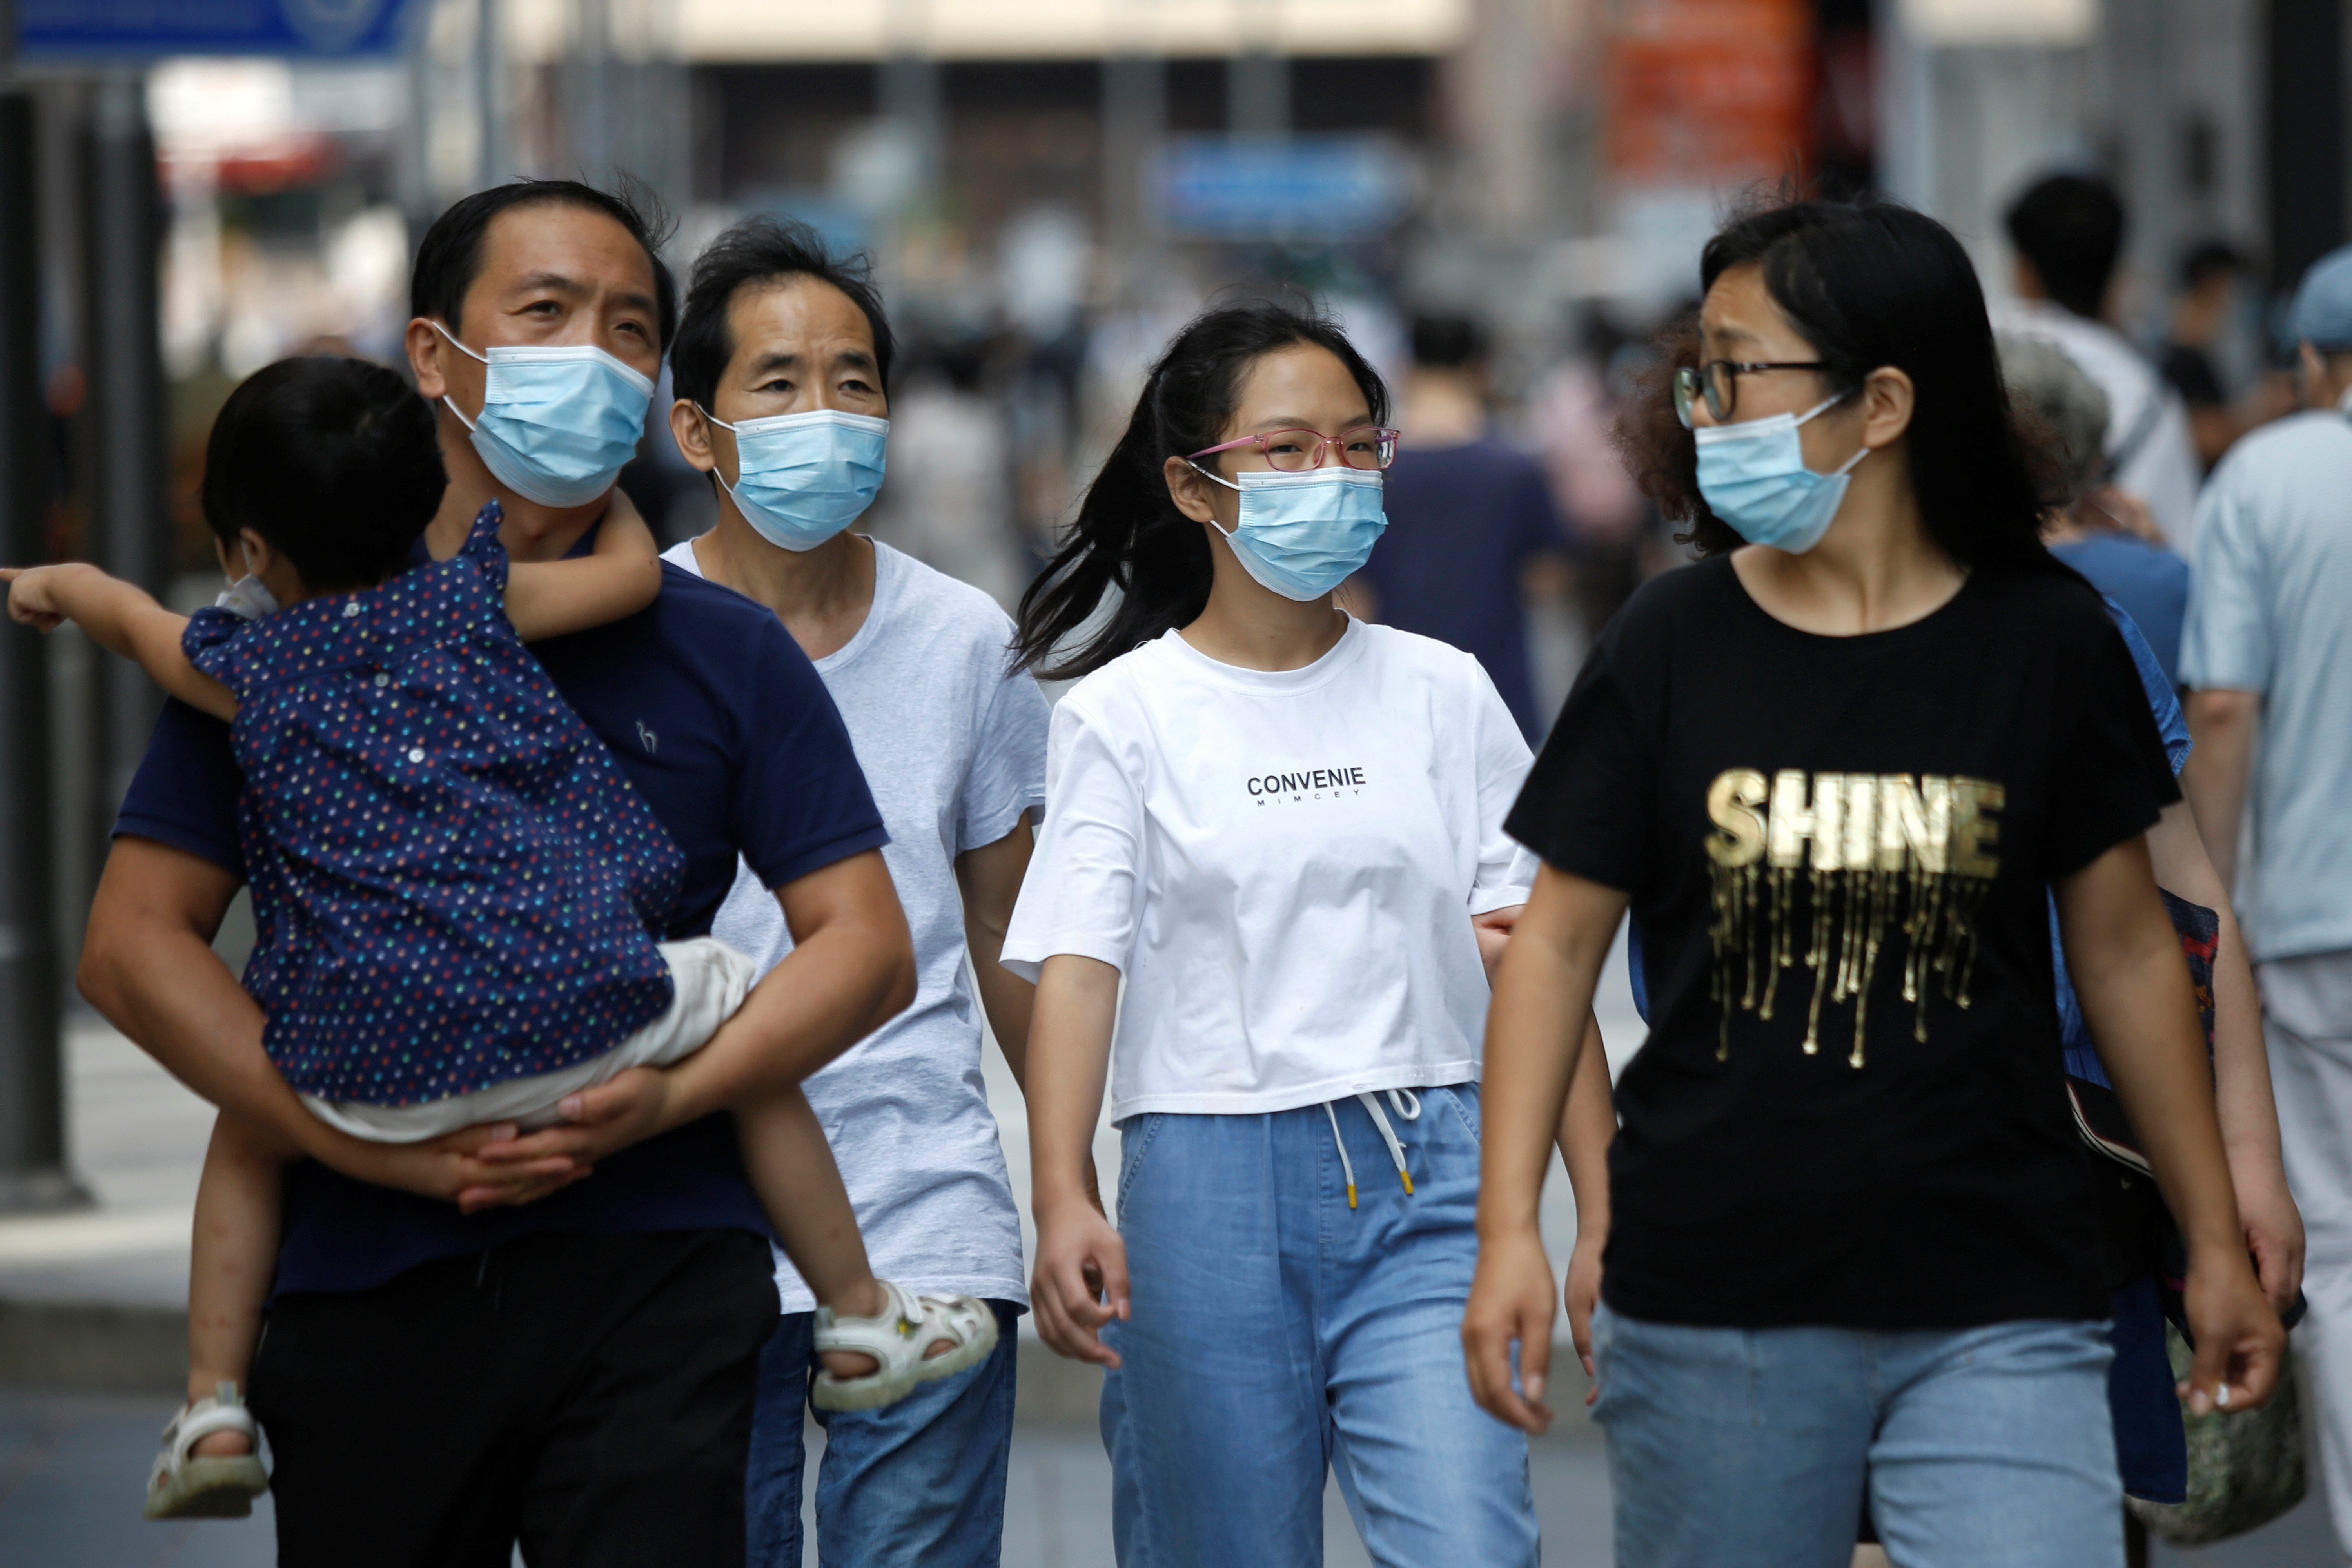 People wearing face masks walk at a shopping area, after Beijing Centre for Disease Prevention and Control announced that wearing face masks are no longer mandatory outdoor in Beijing, following the coronavirus disease (COVID-19) outbreak, China August 21, 2020. REUTERS/Tingshu Wang - RC25II9FQLSJ